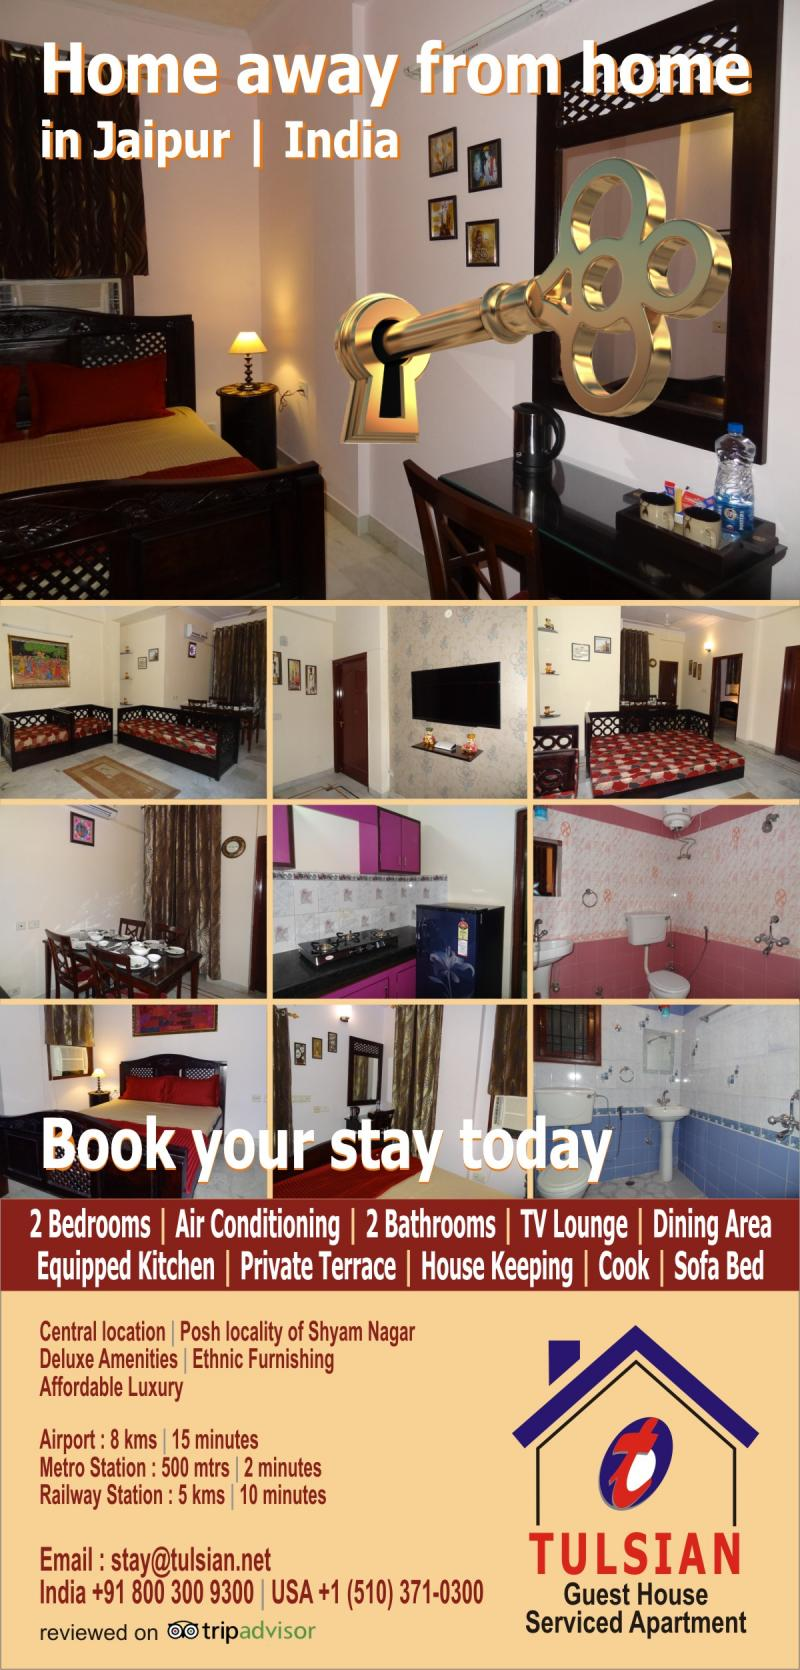 Tulsian Guest House, Seviced Appartment, Jaipur, India, Affordable Luxury